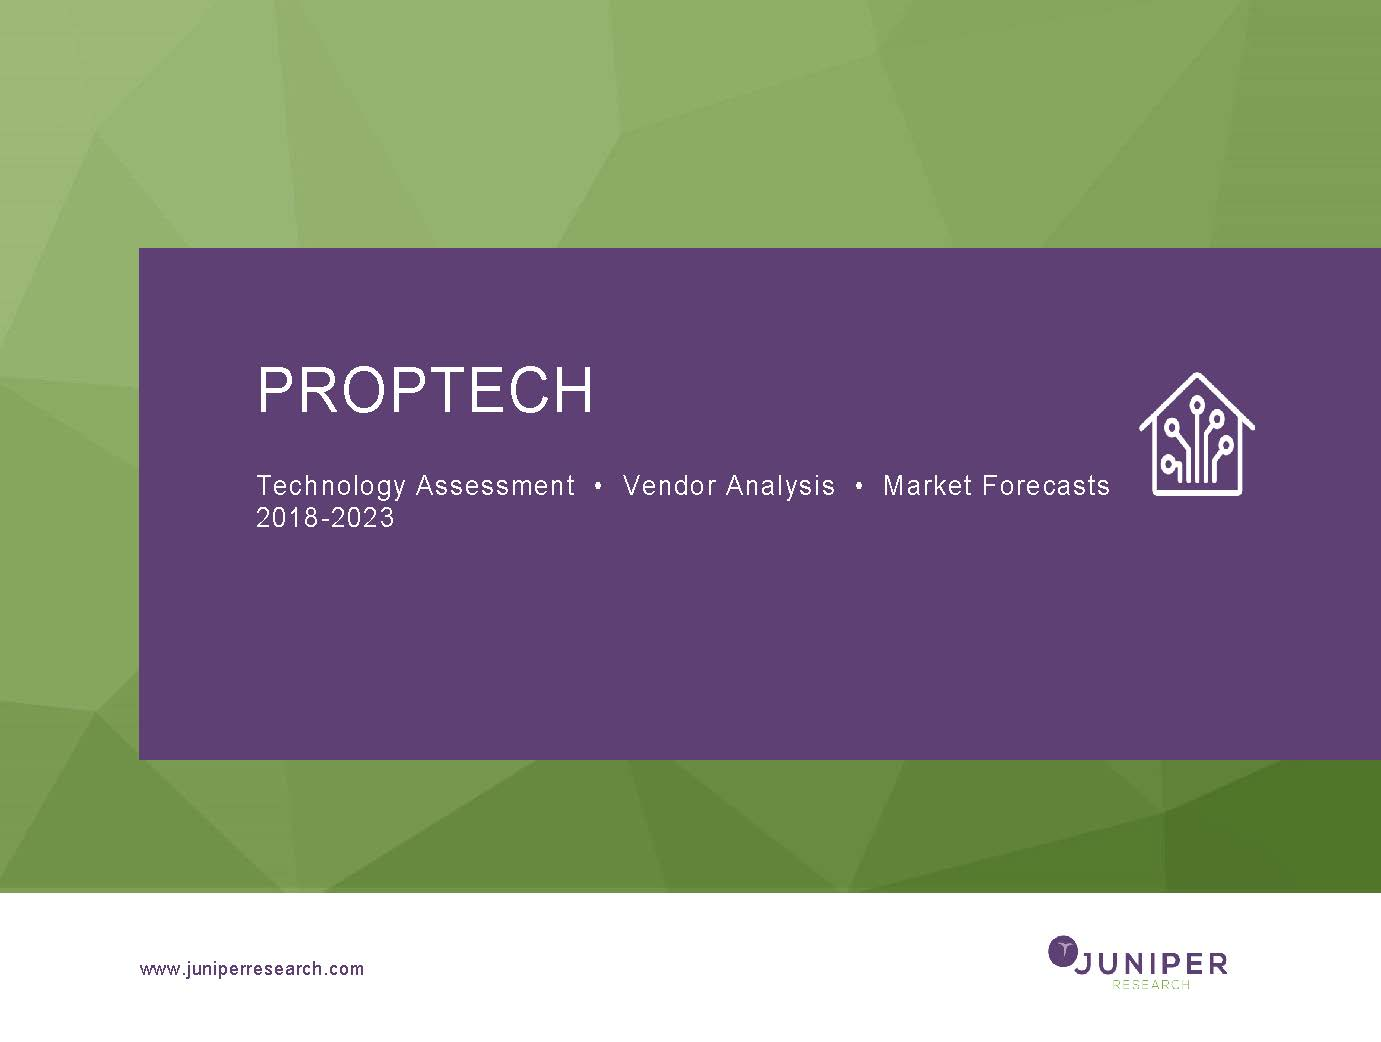 Proptech: Technology Assessment, Vendor Analysis & Market Forecasts 2018-2023